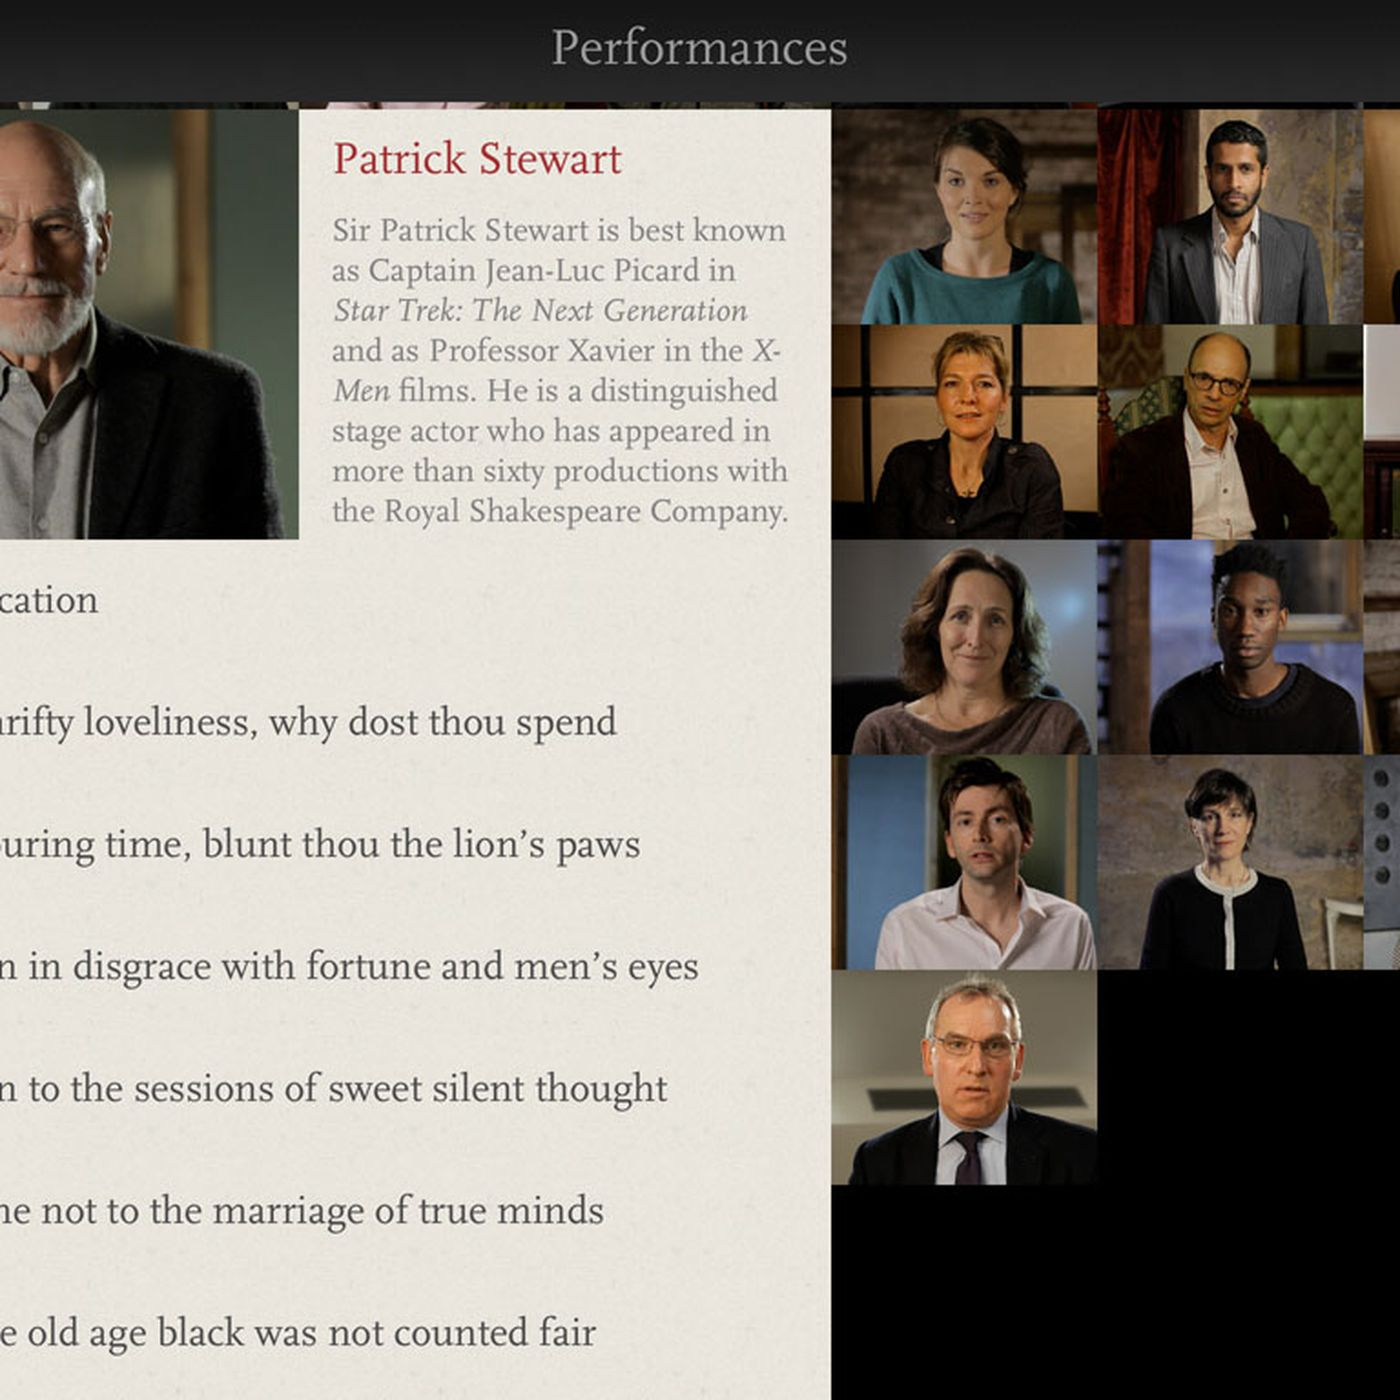 Digital, print, oral: Shakespeare's Sonnets for iPad brings